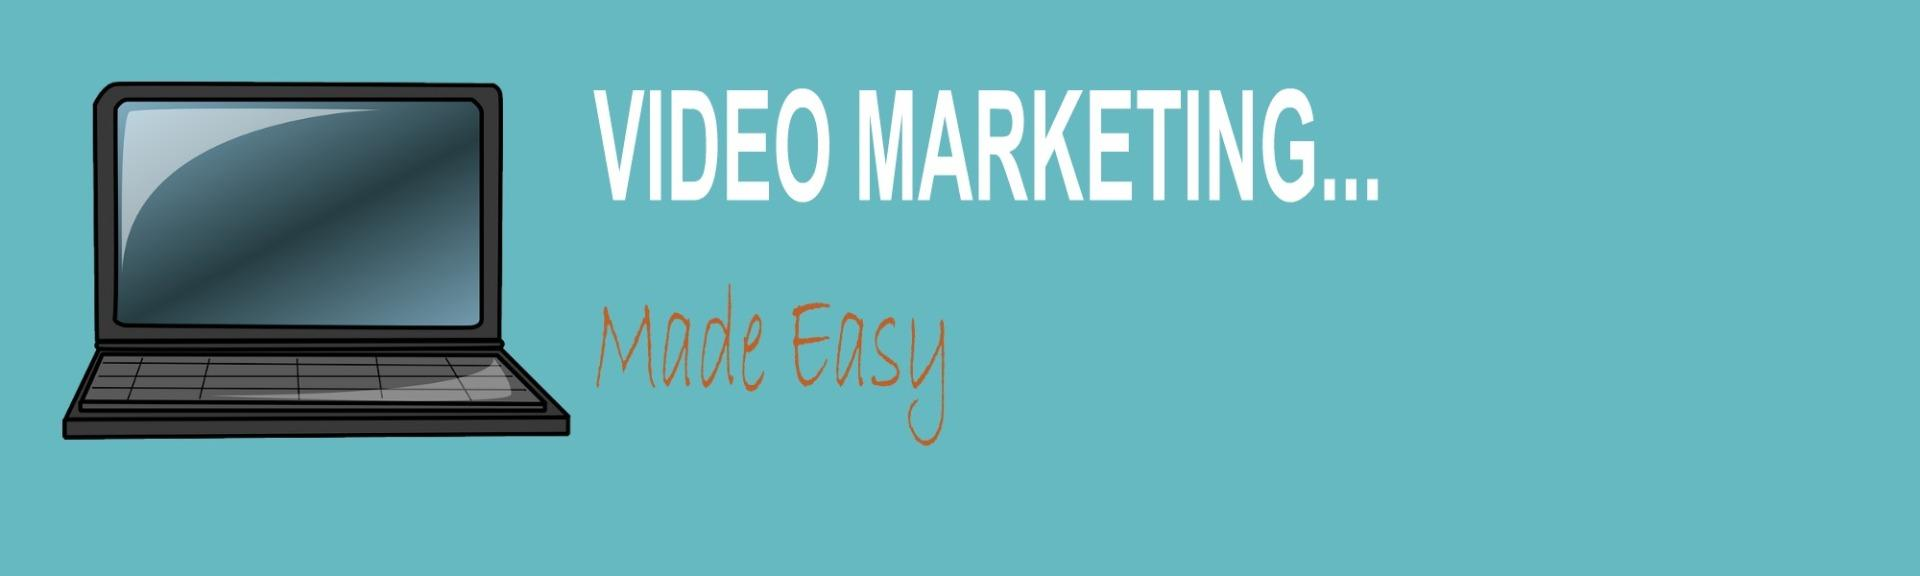 Video Marketing Made Easy Create-eLearning